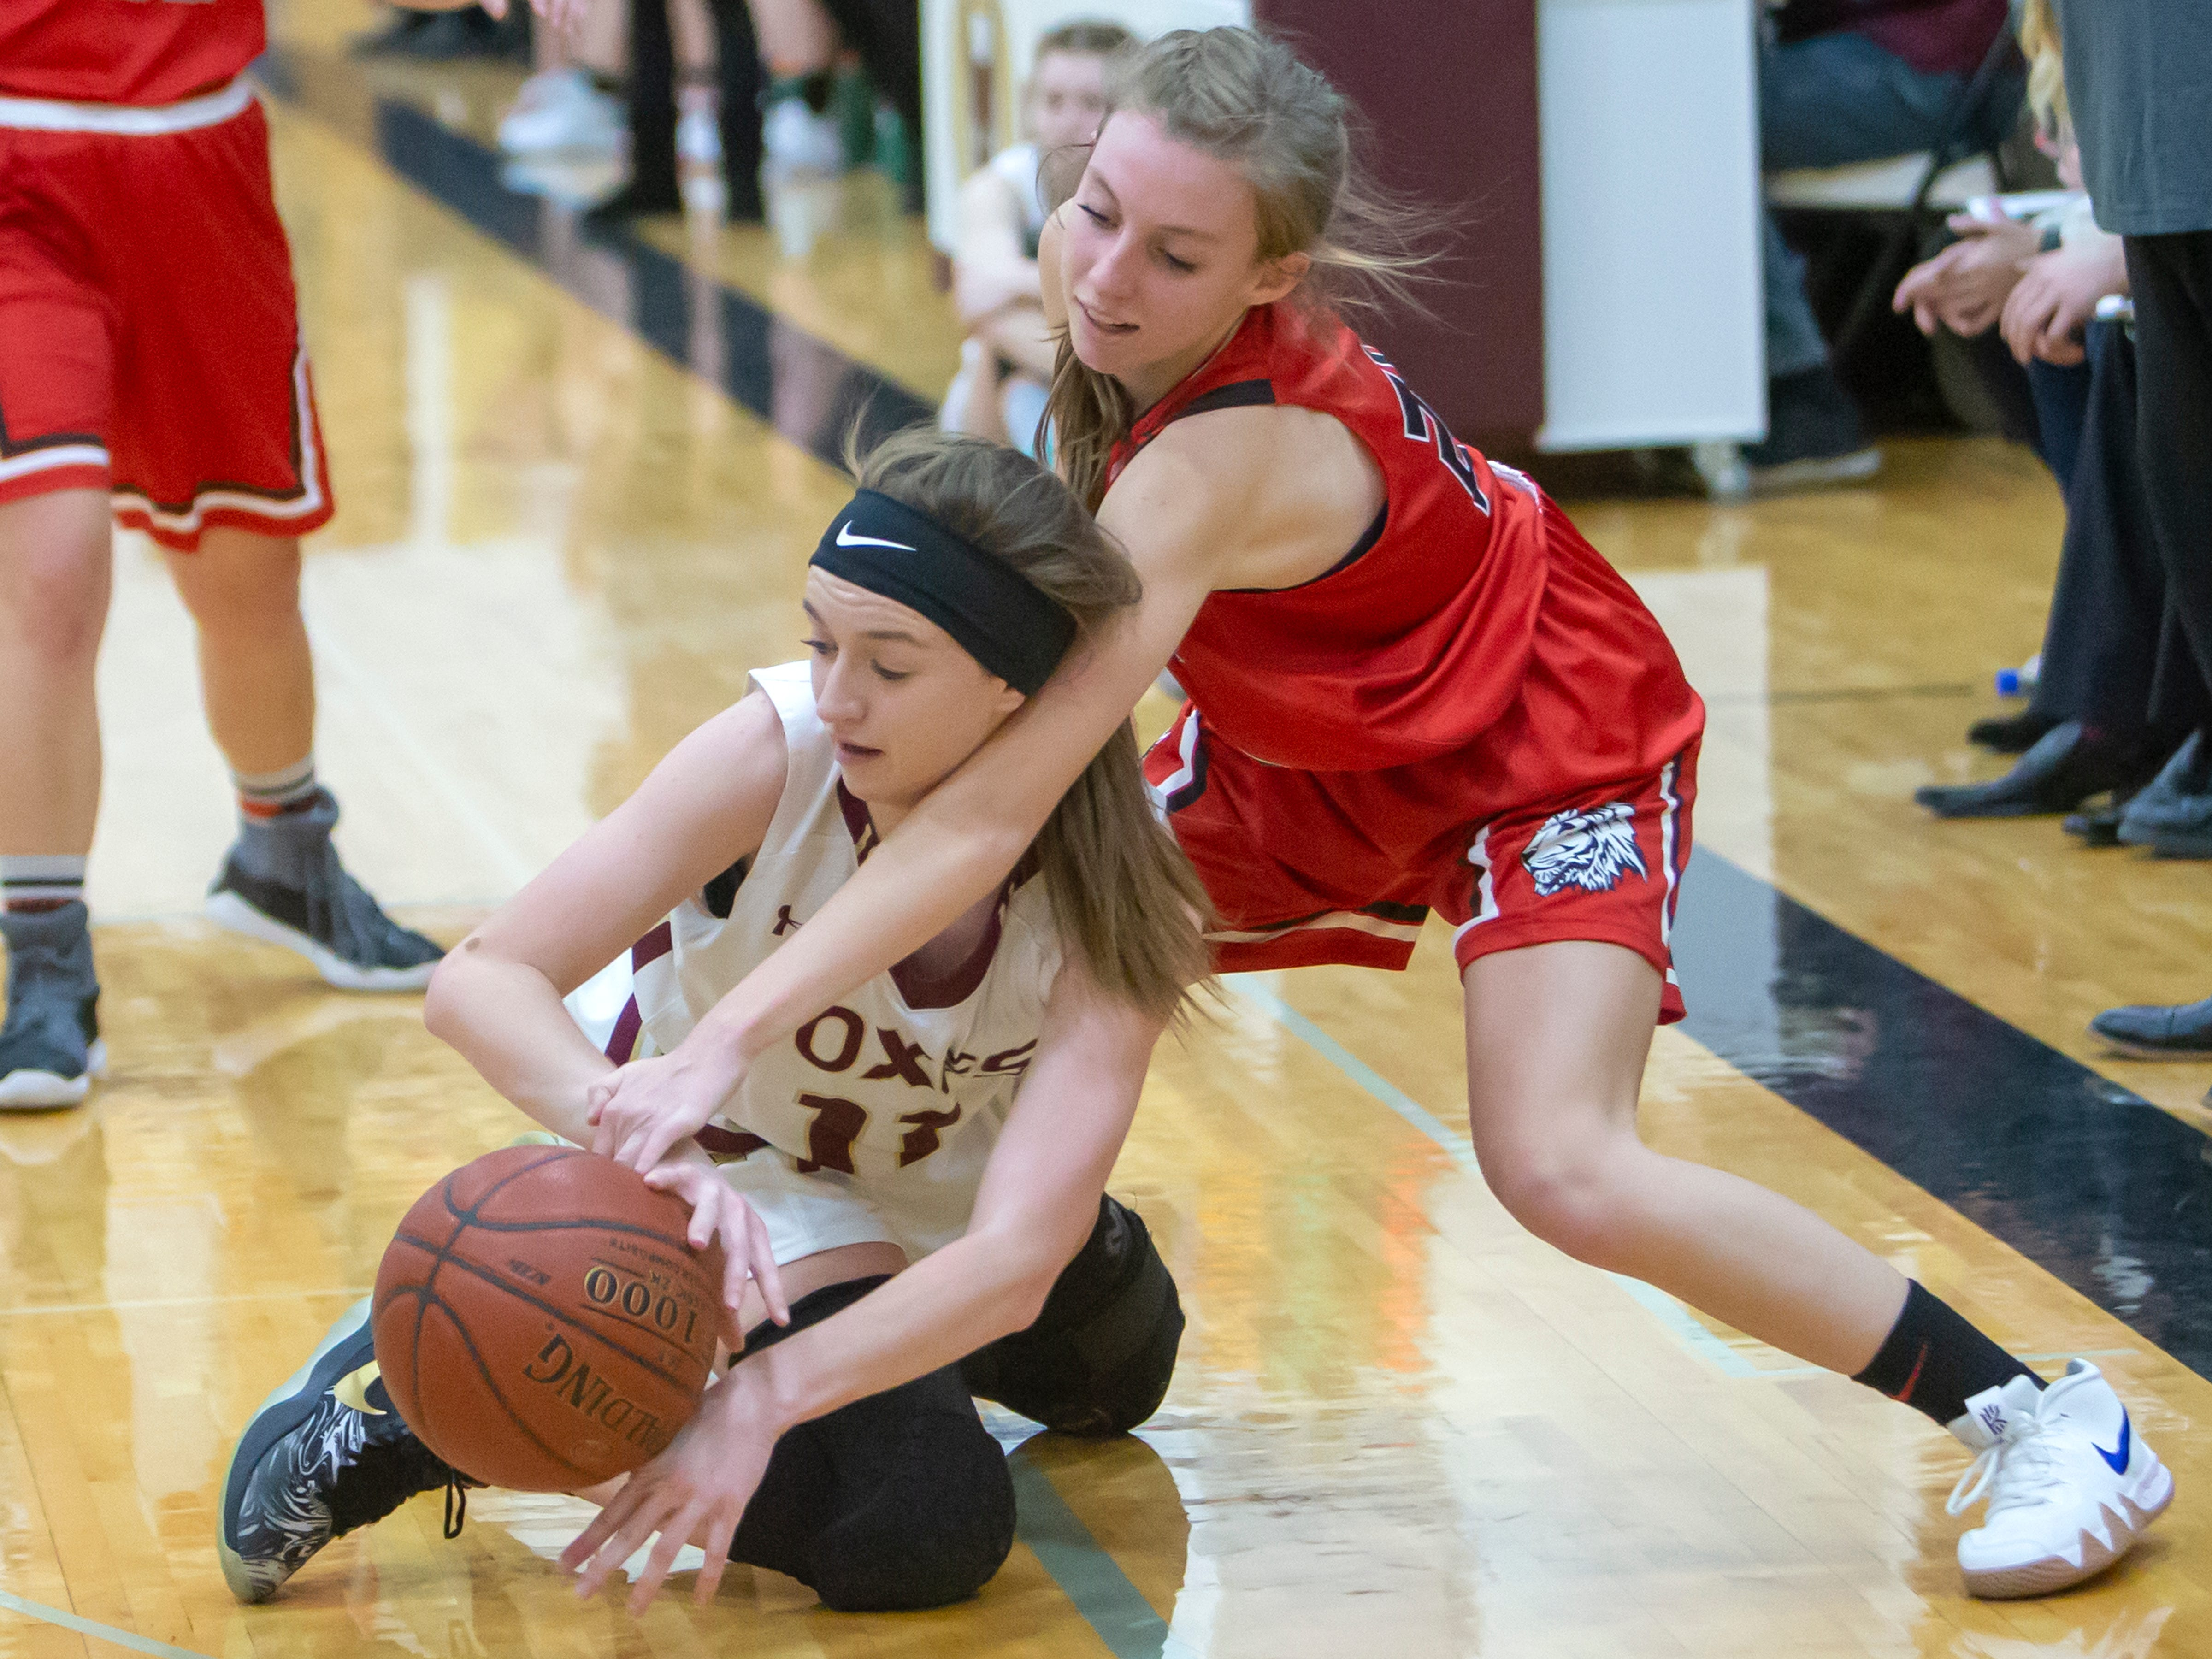 Lomira's Kailin Brath attempts to break the ball from Omro's Danycka Milis at Omro High School on Friday, December 14, 2018.